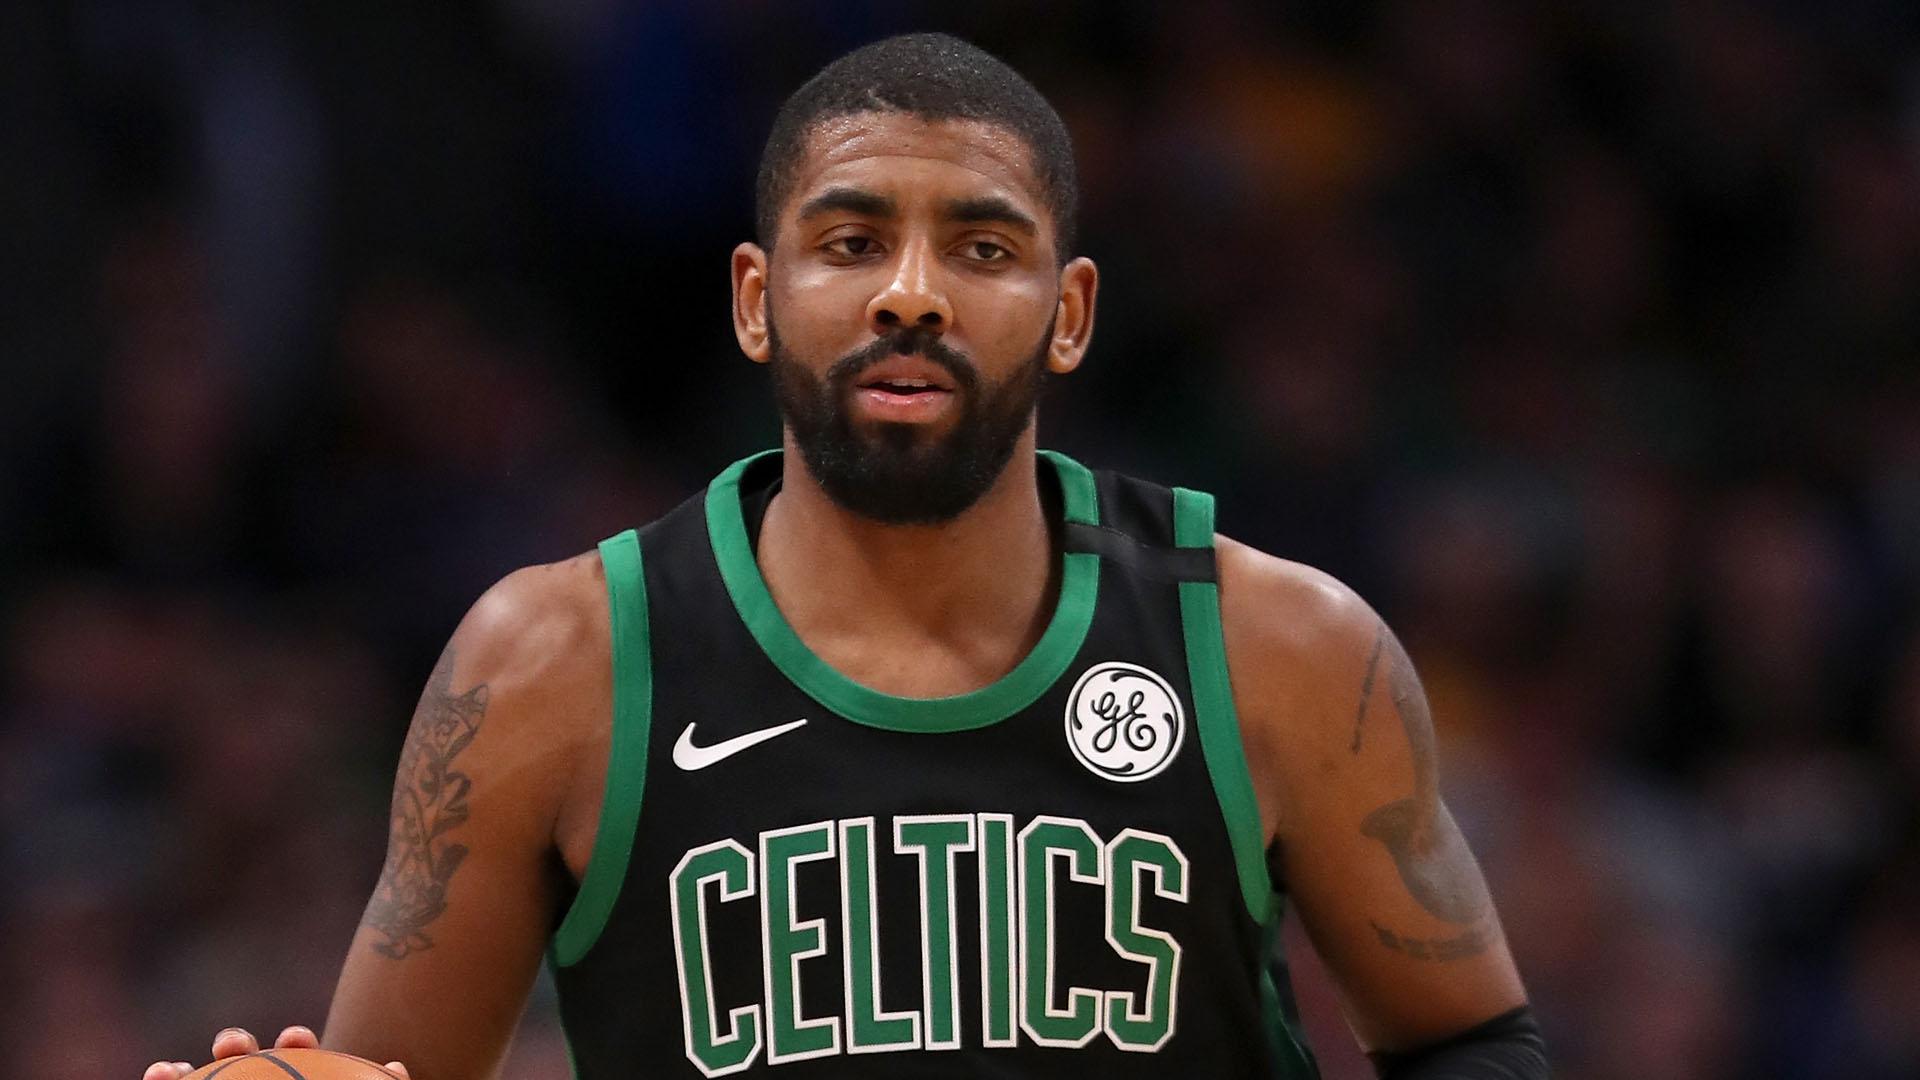 Irving joins Celtics greats in record book, then questions team's strategy